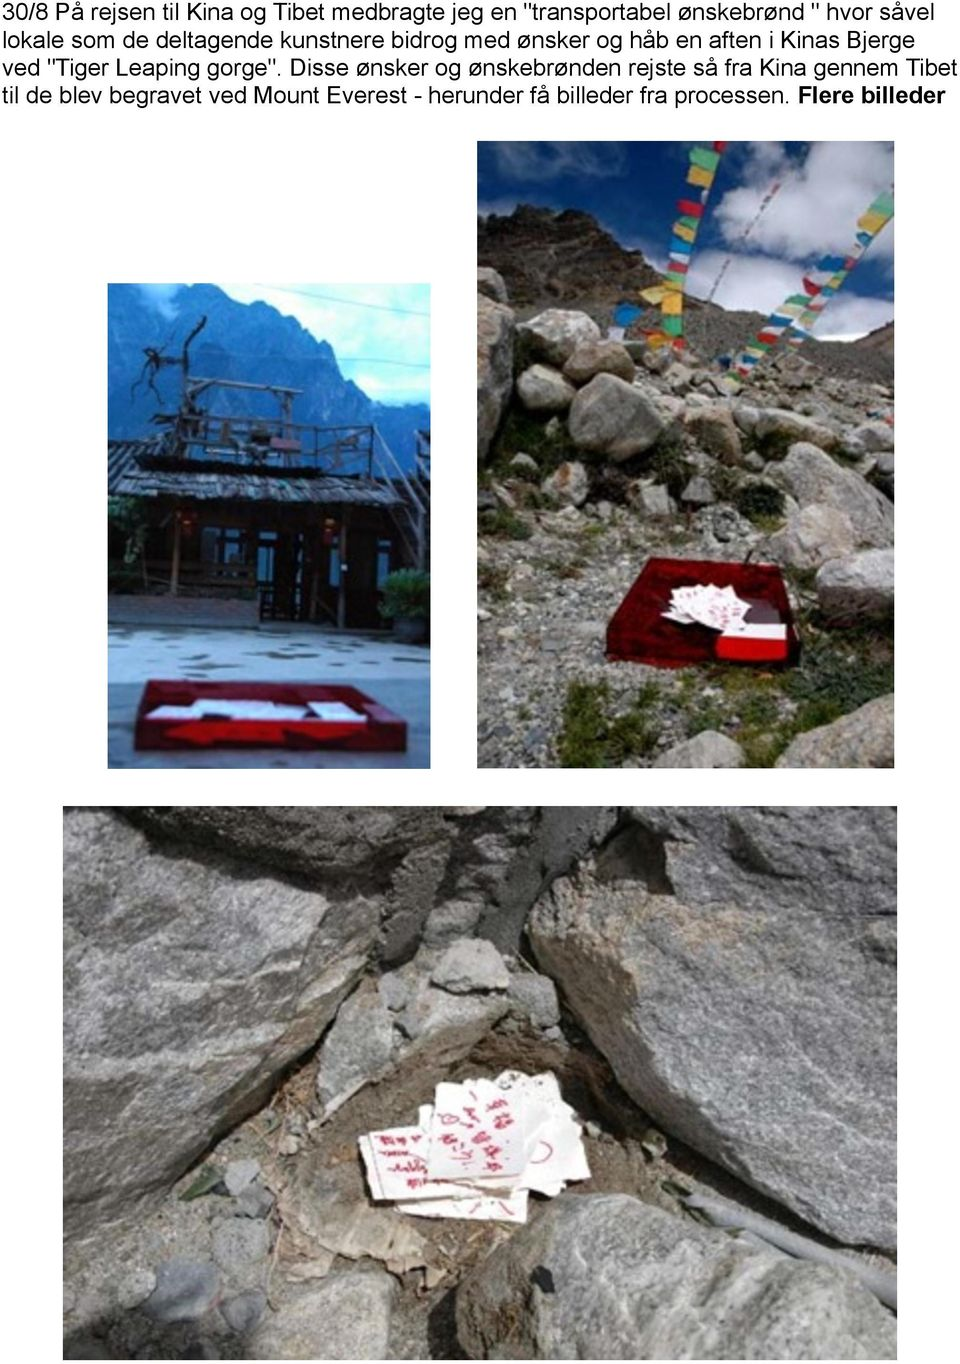 "Bjerge ved ""Tiger Leaping gorge""."